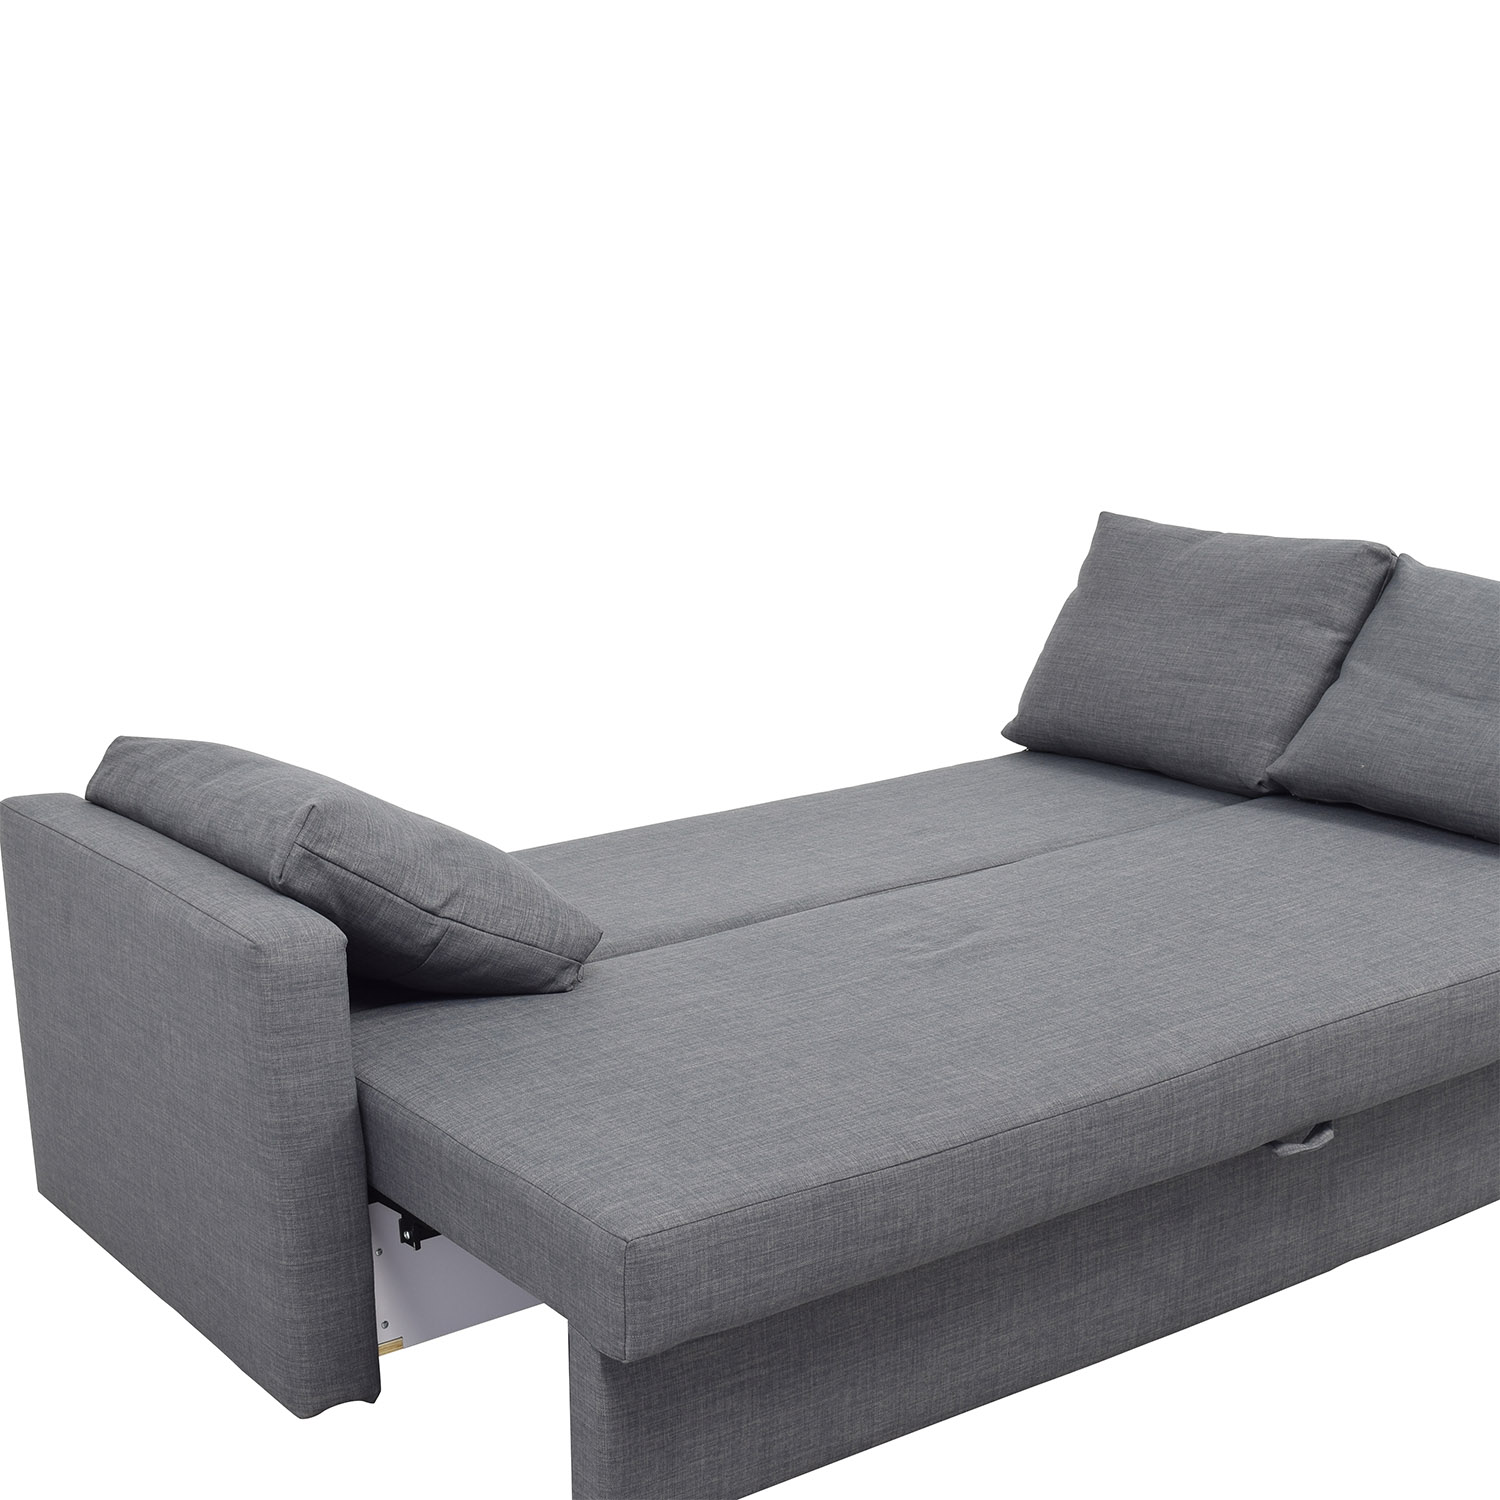 32% OFF IKEA IKEA FRIHETEN Grey Sleeper sofa Sofas